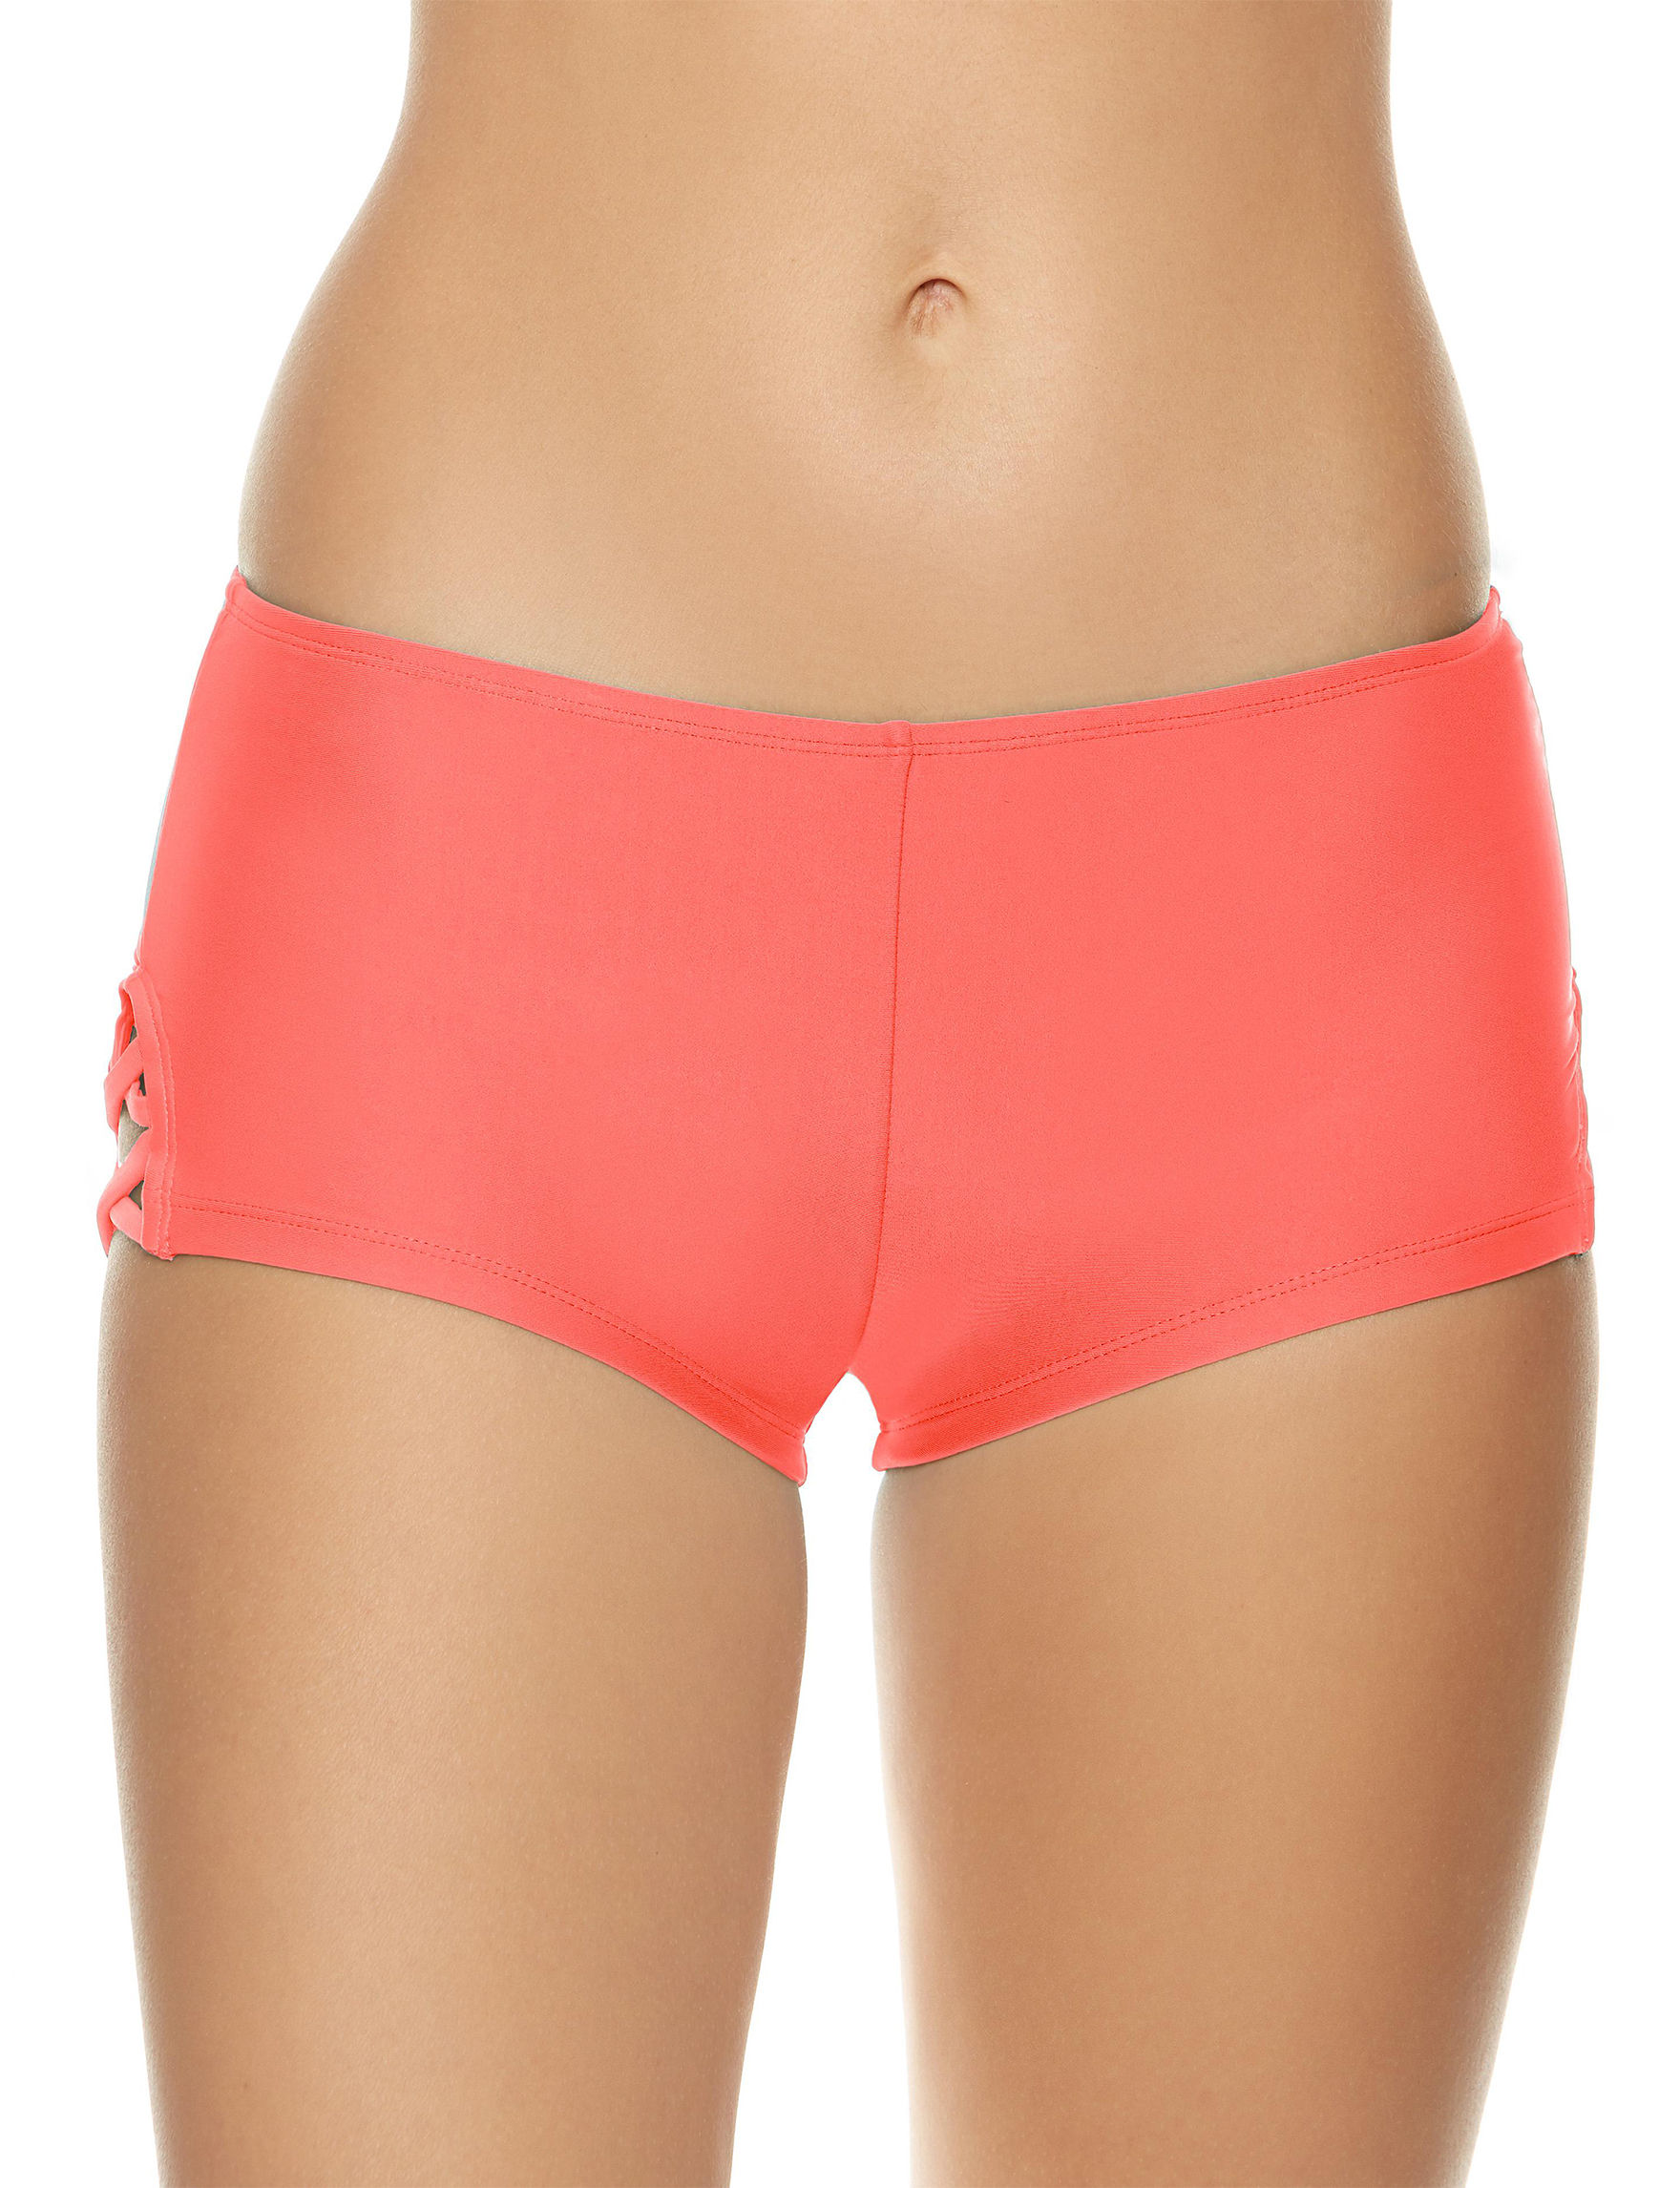 Polka Dot Coral Swimsuit Bottoms Boyshort